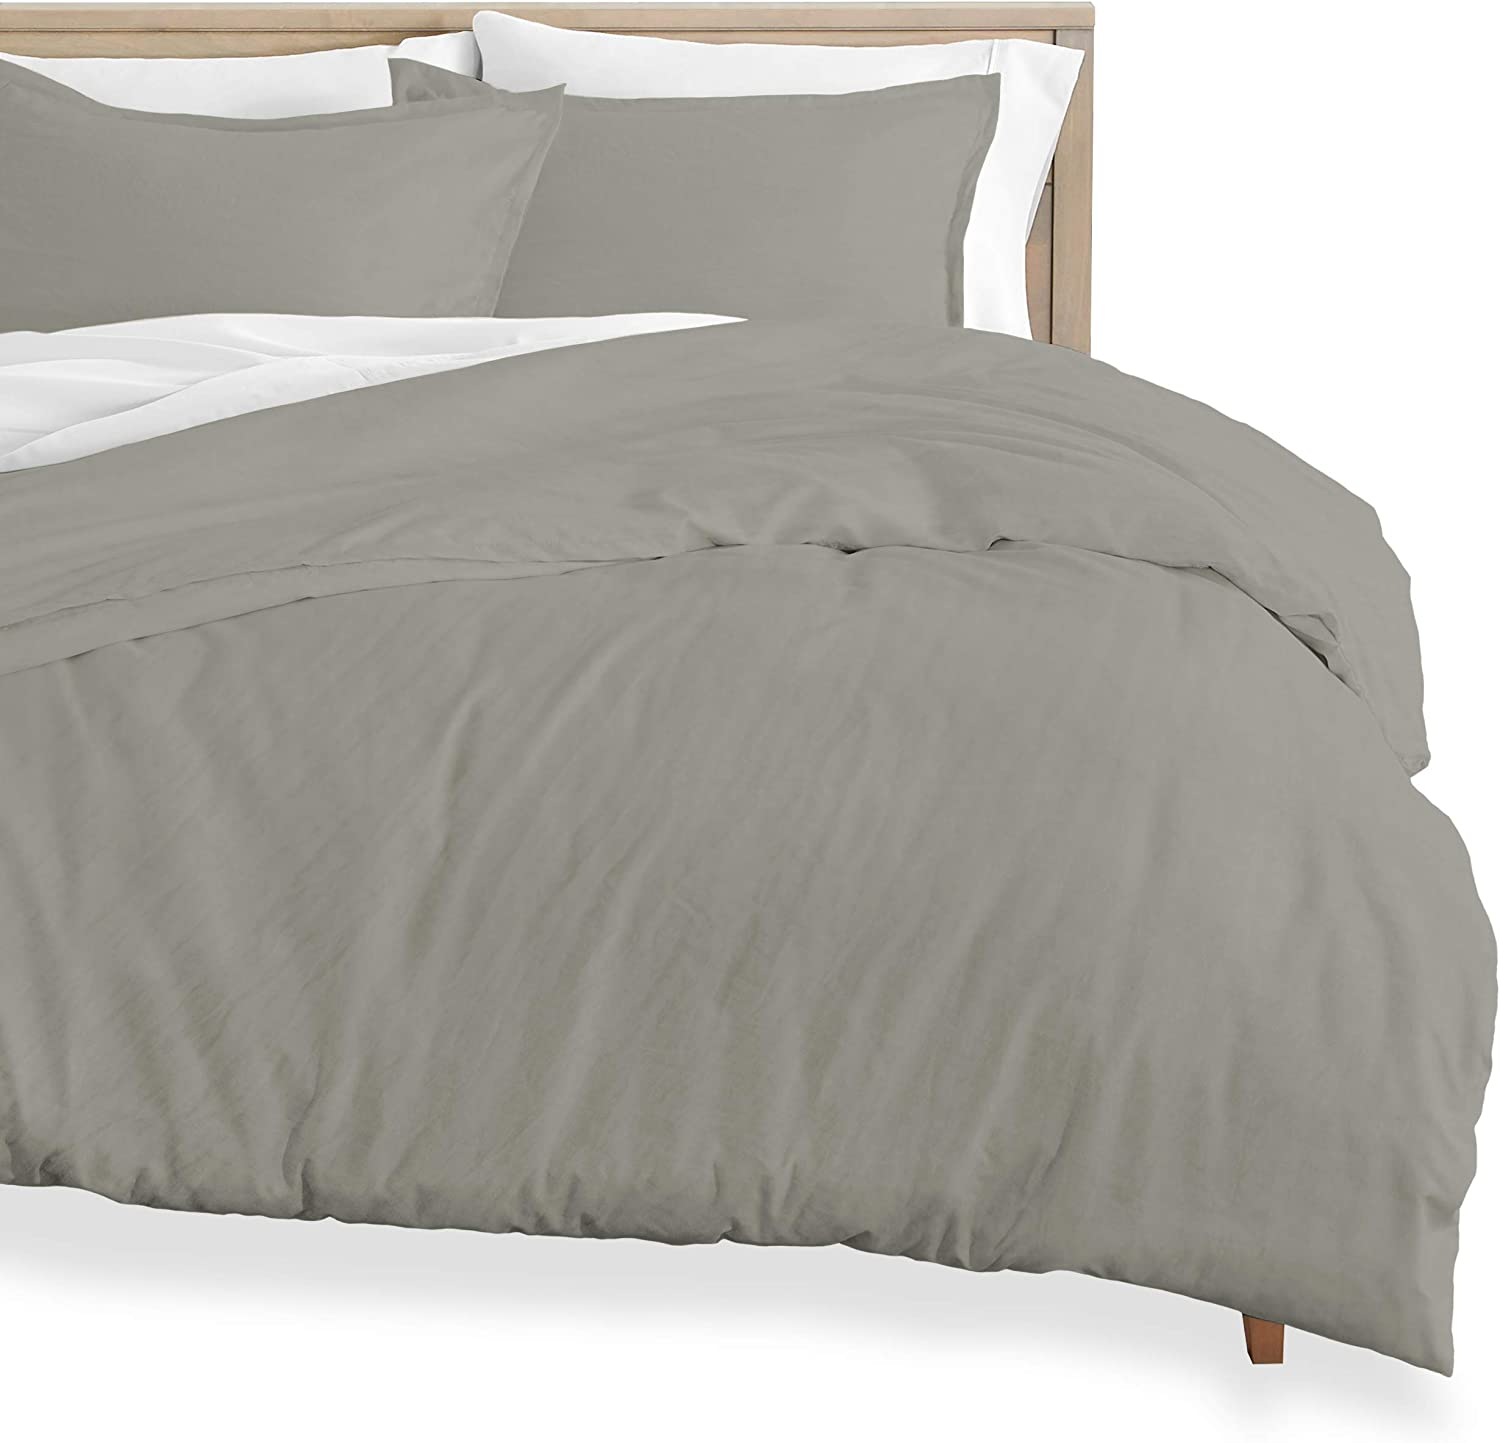 Bare Home Washed Duvet Cover and Sham Set - Full Size - Premium 1800 Ultra-Soft Brushed Microfiber - Hypoallergenic, Easy Care, Stain Resistant (Full, Sandwashed Frost Grey)